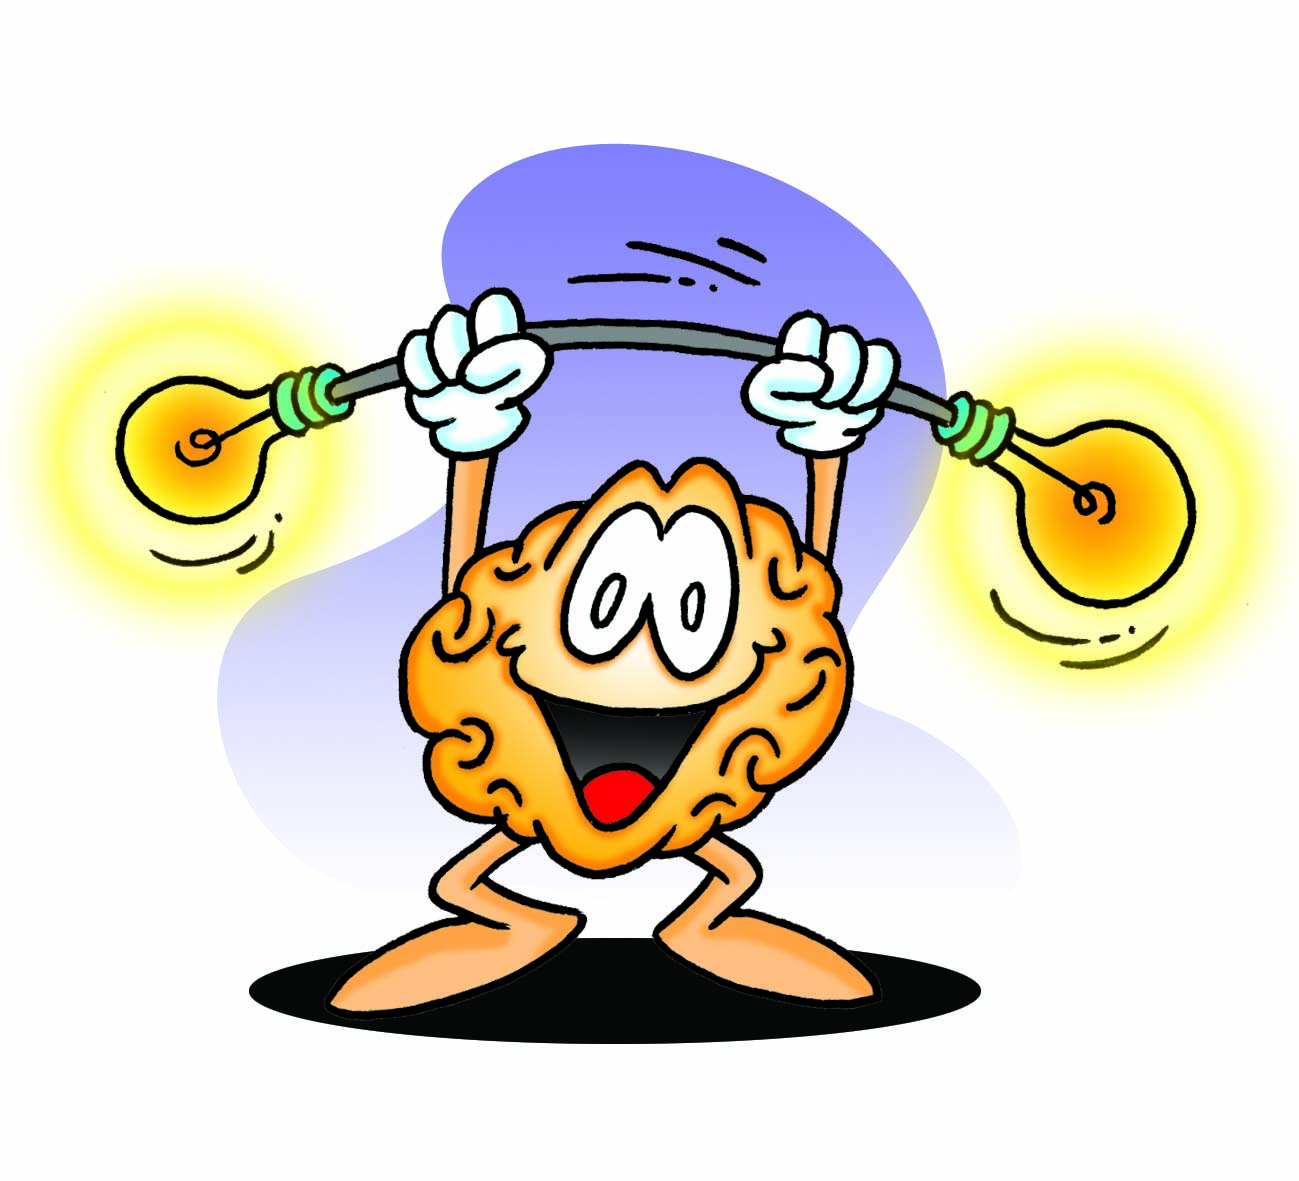 Brains clipart lifelong learning BRAIN of AT  WORK: